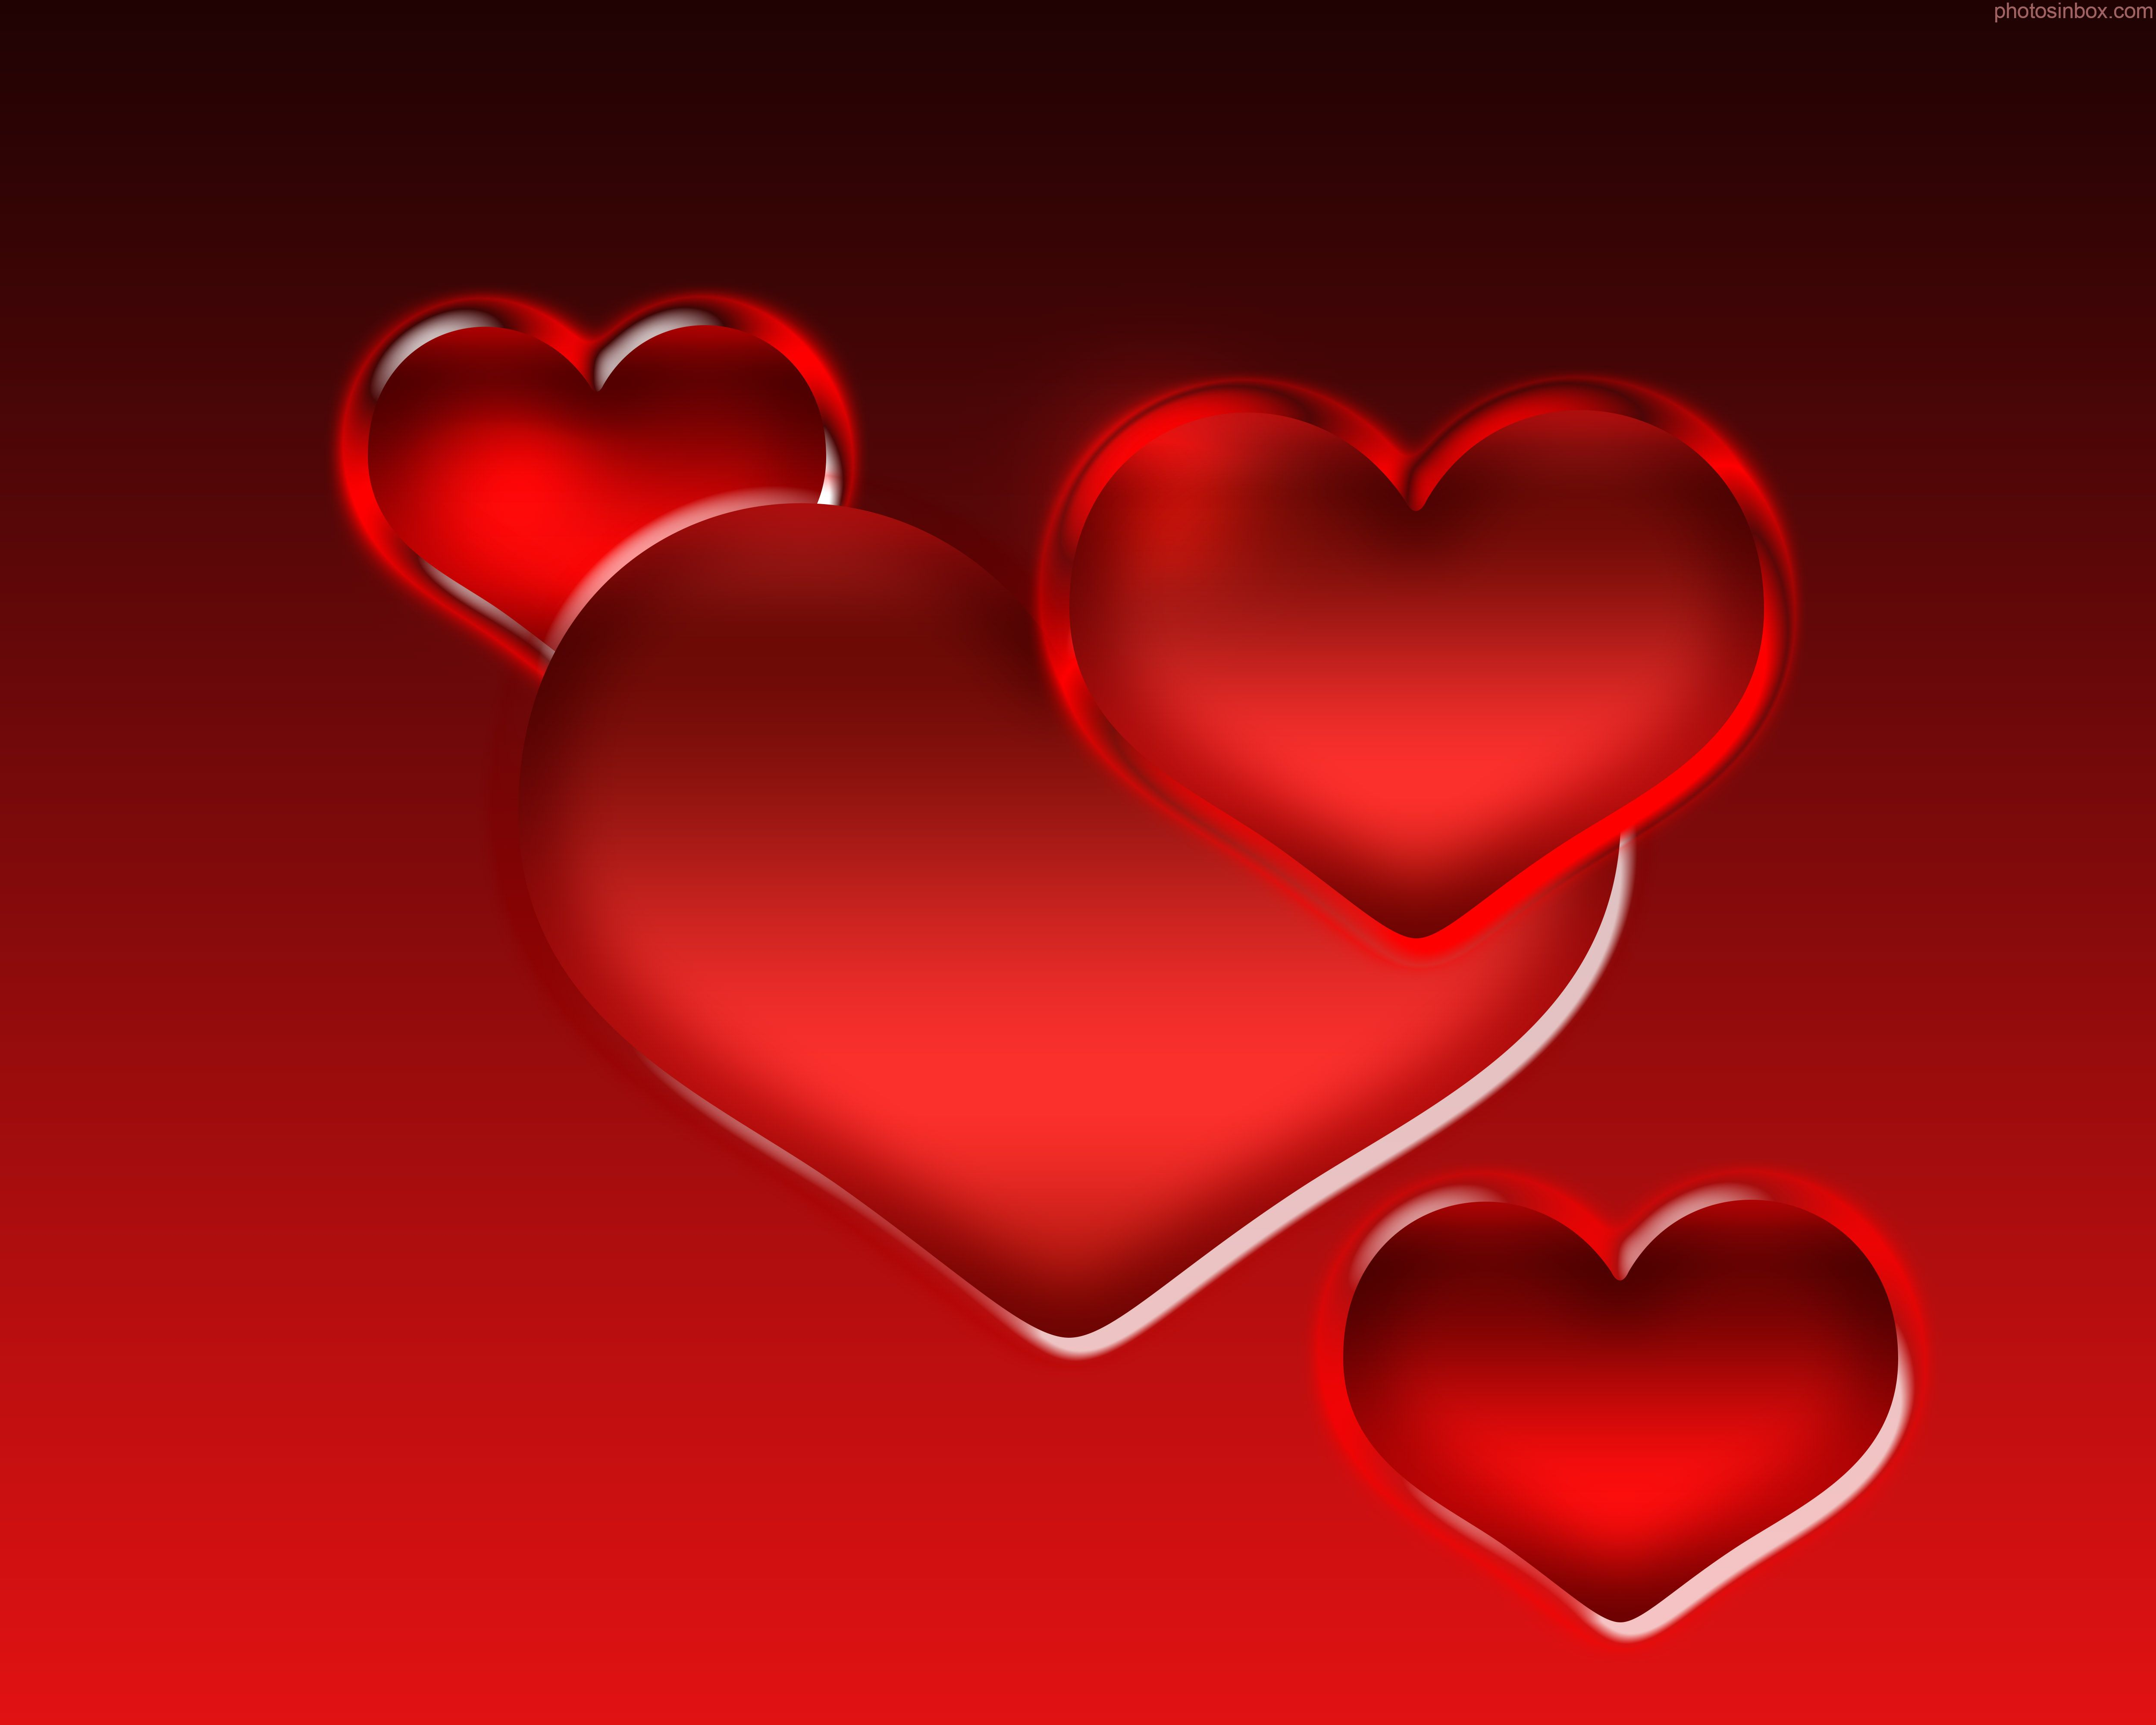 3d Heart Wallpaper Cute Red Hearts Background Free